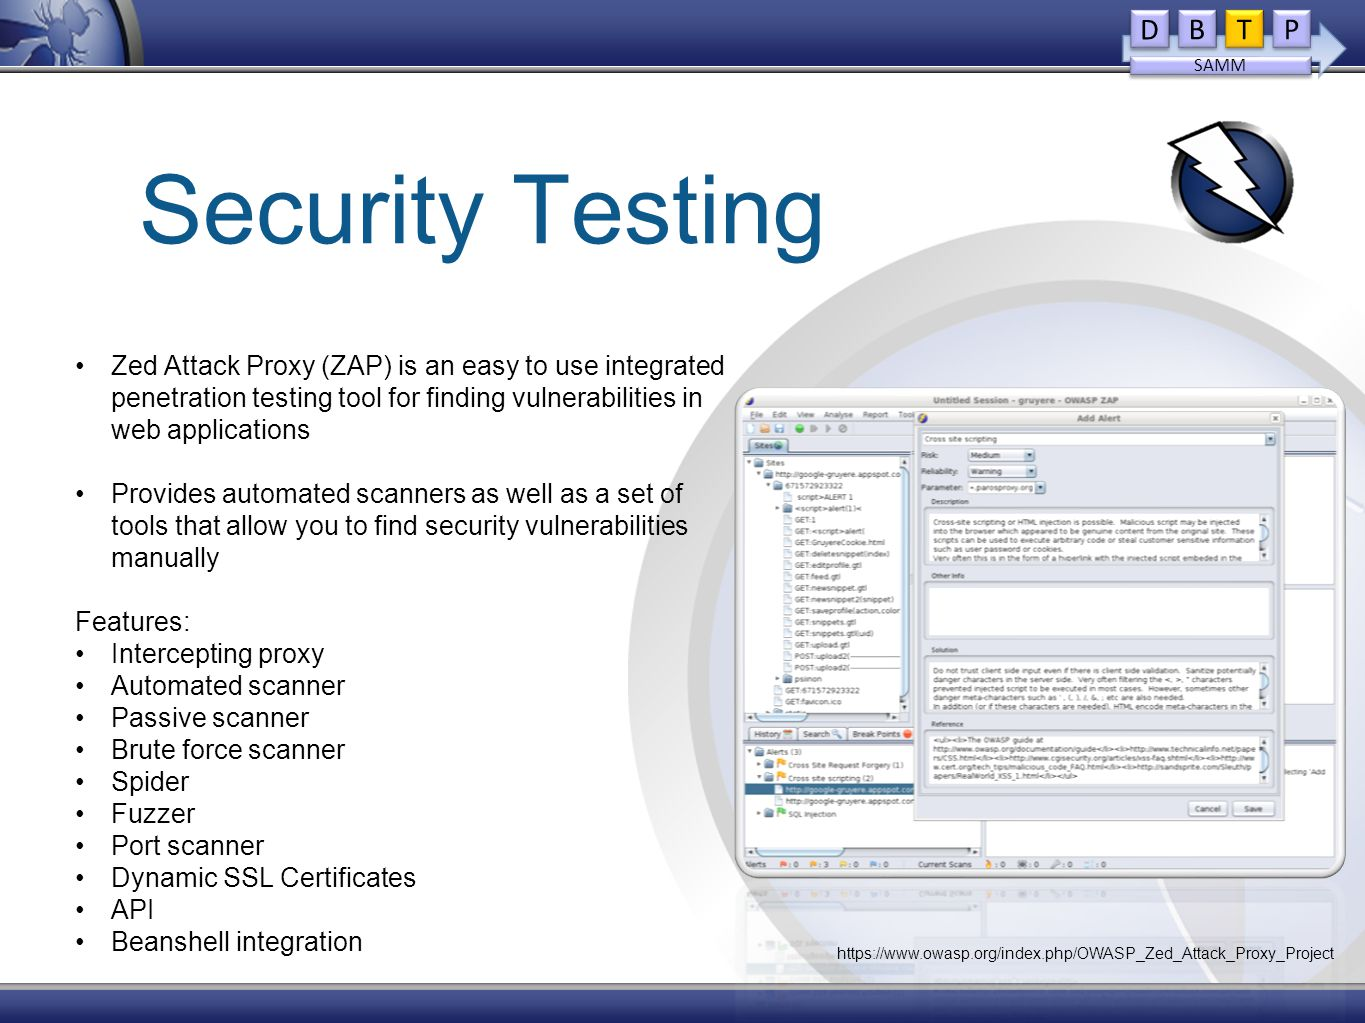 Security Testing Zed Attack Proxy (ZAP) is an easy to use integrated penetration testing tool for finding vulnerabilities in web applications Provides automated scanners as well as a set of tools that allow you to find security vulnerabilities manually Features: Intercepting proxy Automated scanner Passive scanner Brute force scanner Spider Fuzzer Port scanner Dynamic SSL Certificates API Beanshell integration D D B B T T P P SAMM https://www.owasp.org/index.php/OWASP_Zed_Attack_Proxy_Project